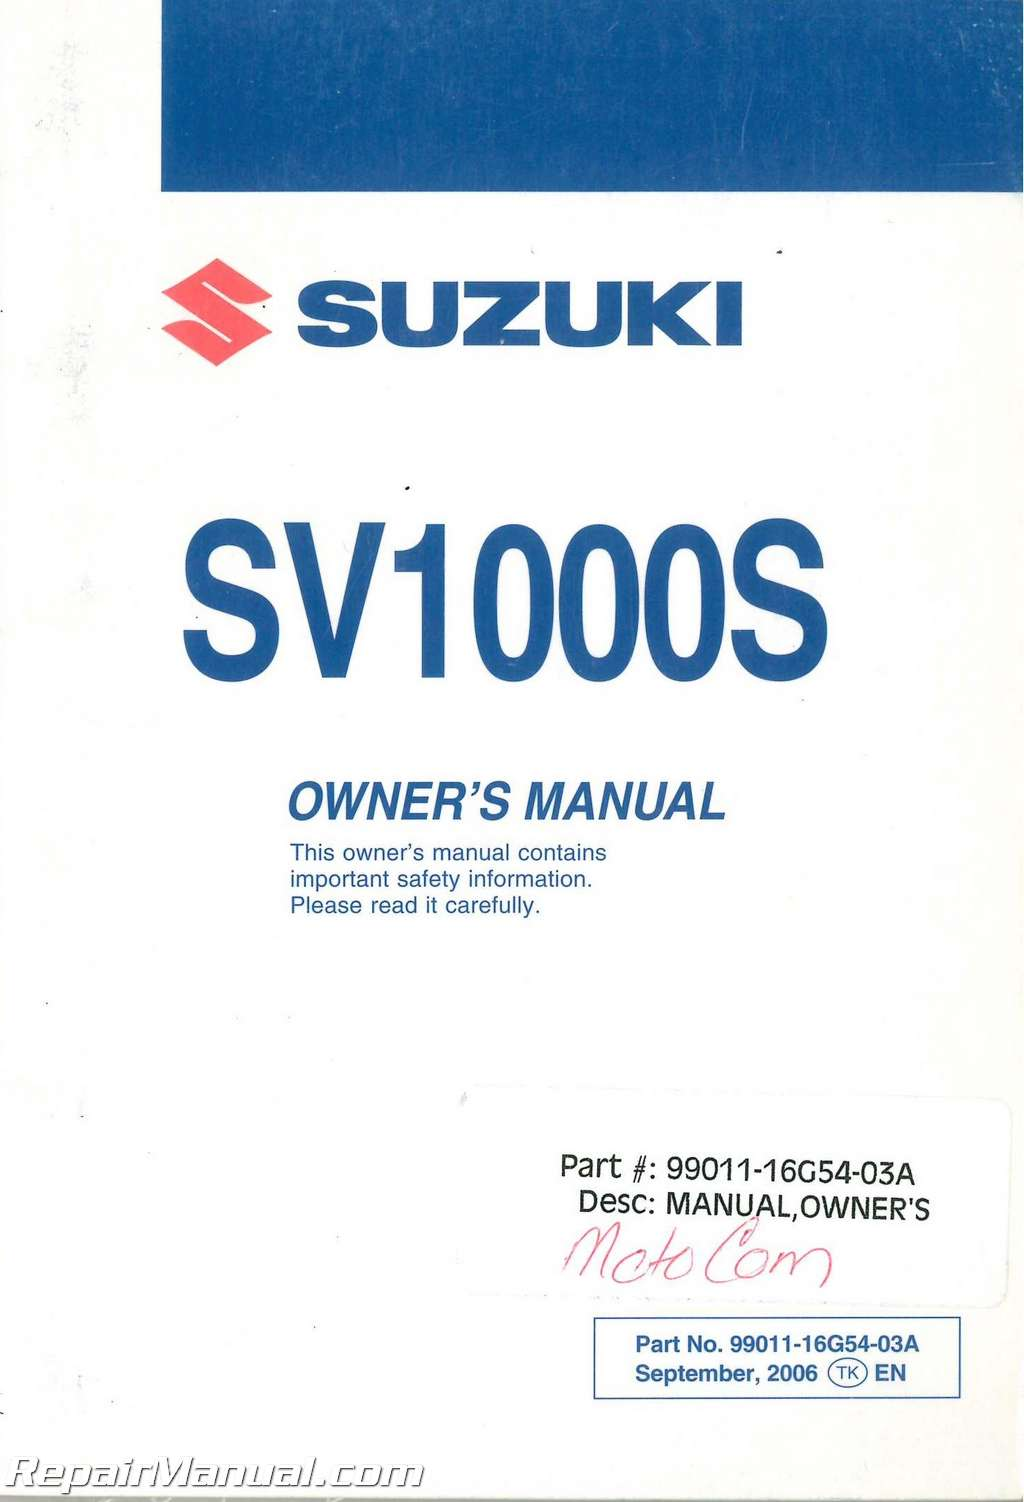 2007 suzuki sv1000s k7 motorcycle owners manual rh repairmanual com 2007 suzuki sv1000s service manual suzuki sv1000 service manual download